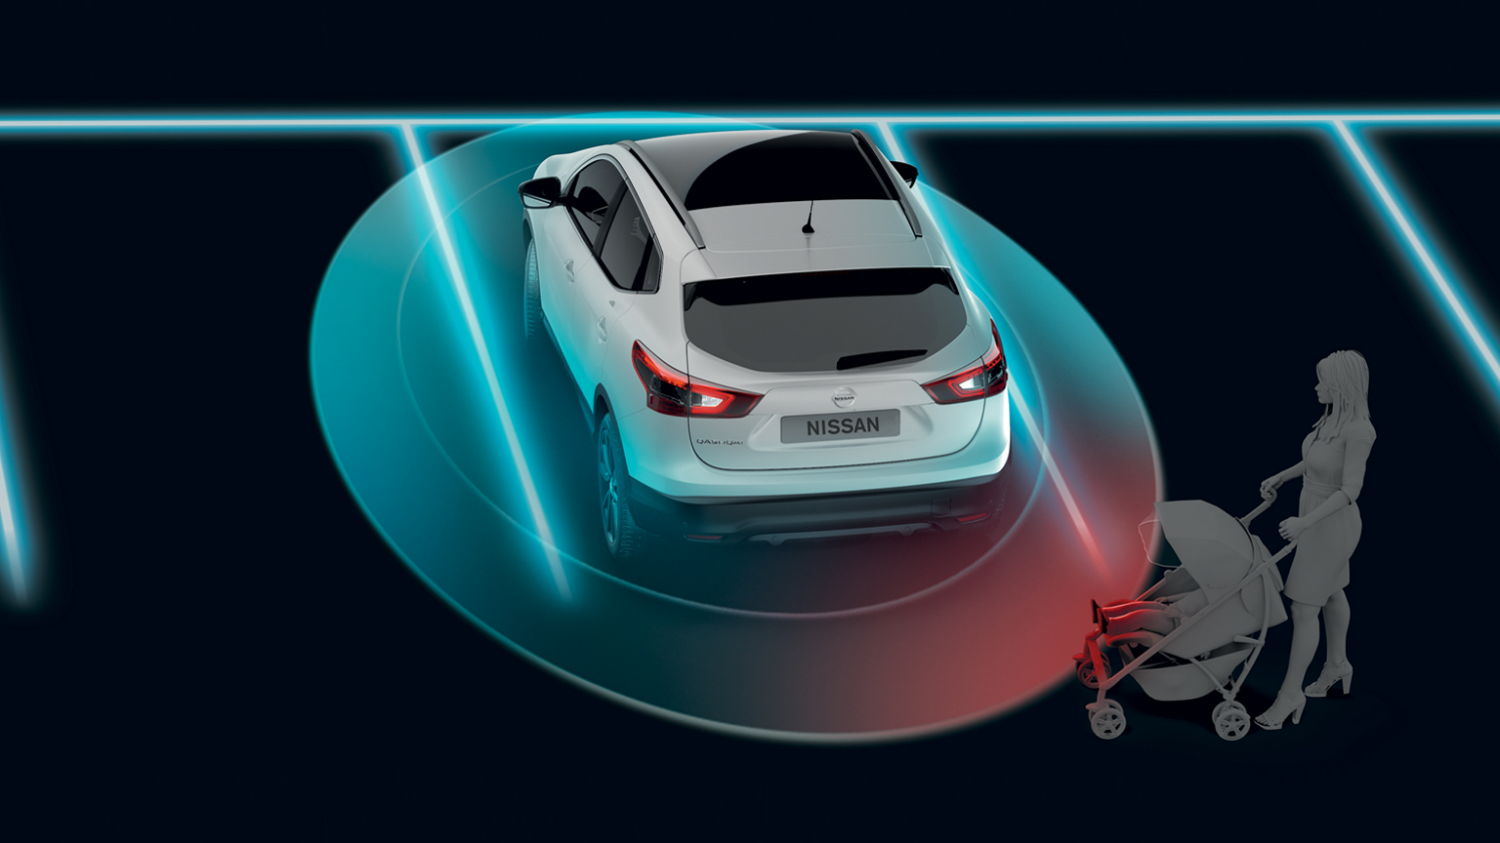 Nissan Pulsar – Hatchback | Moving object detection illustration